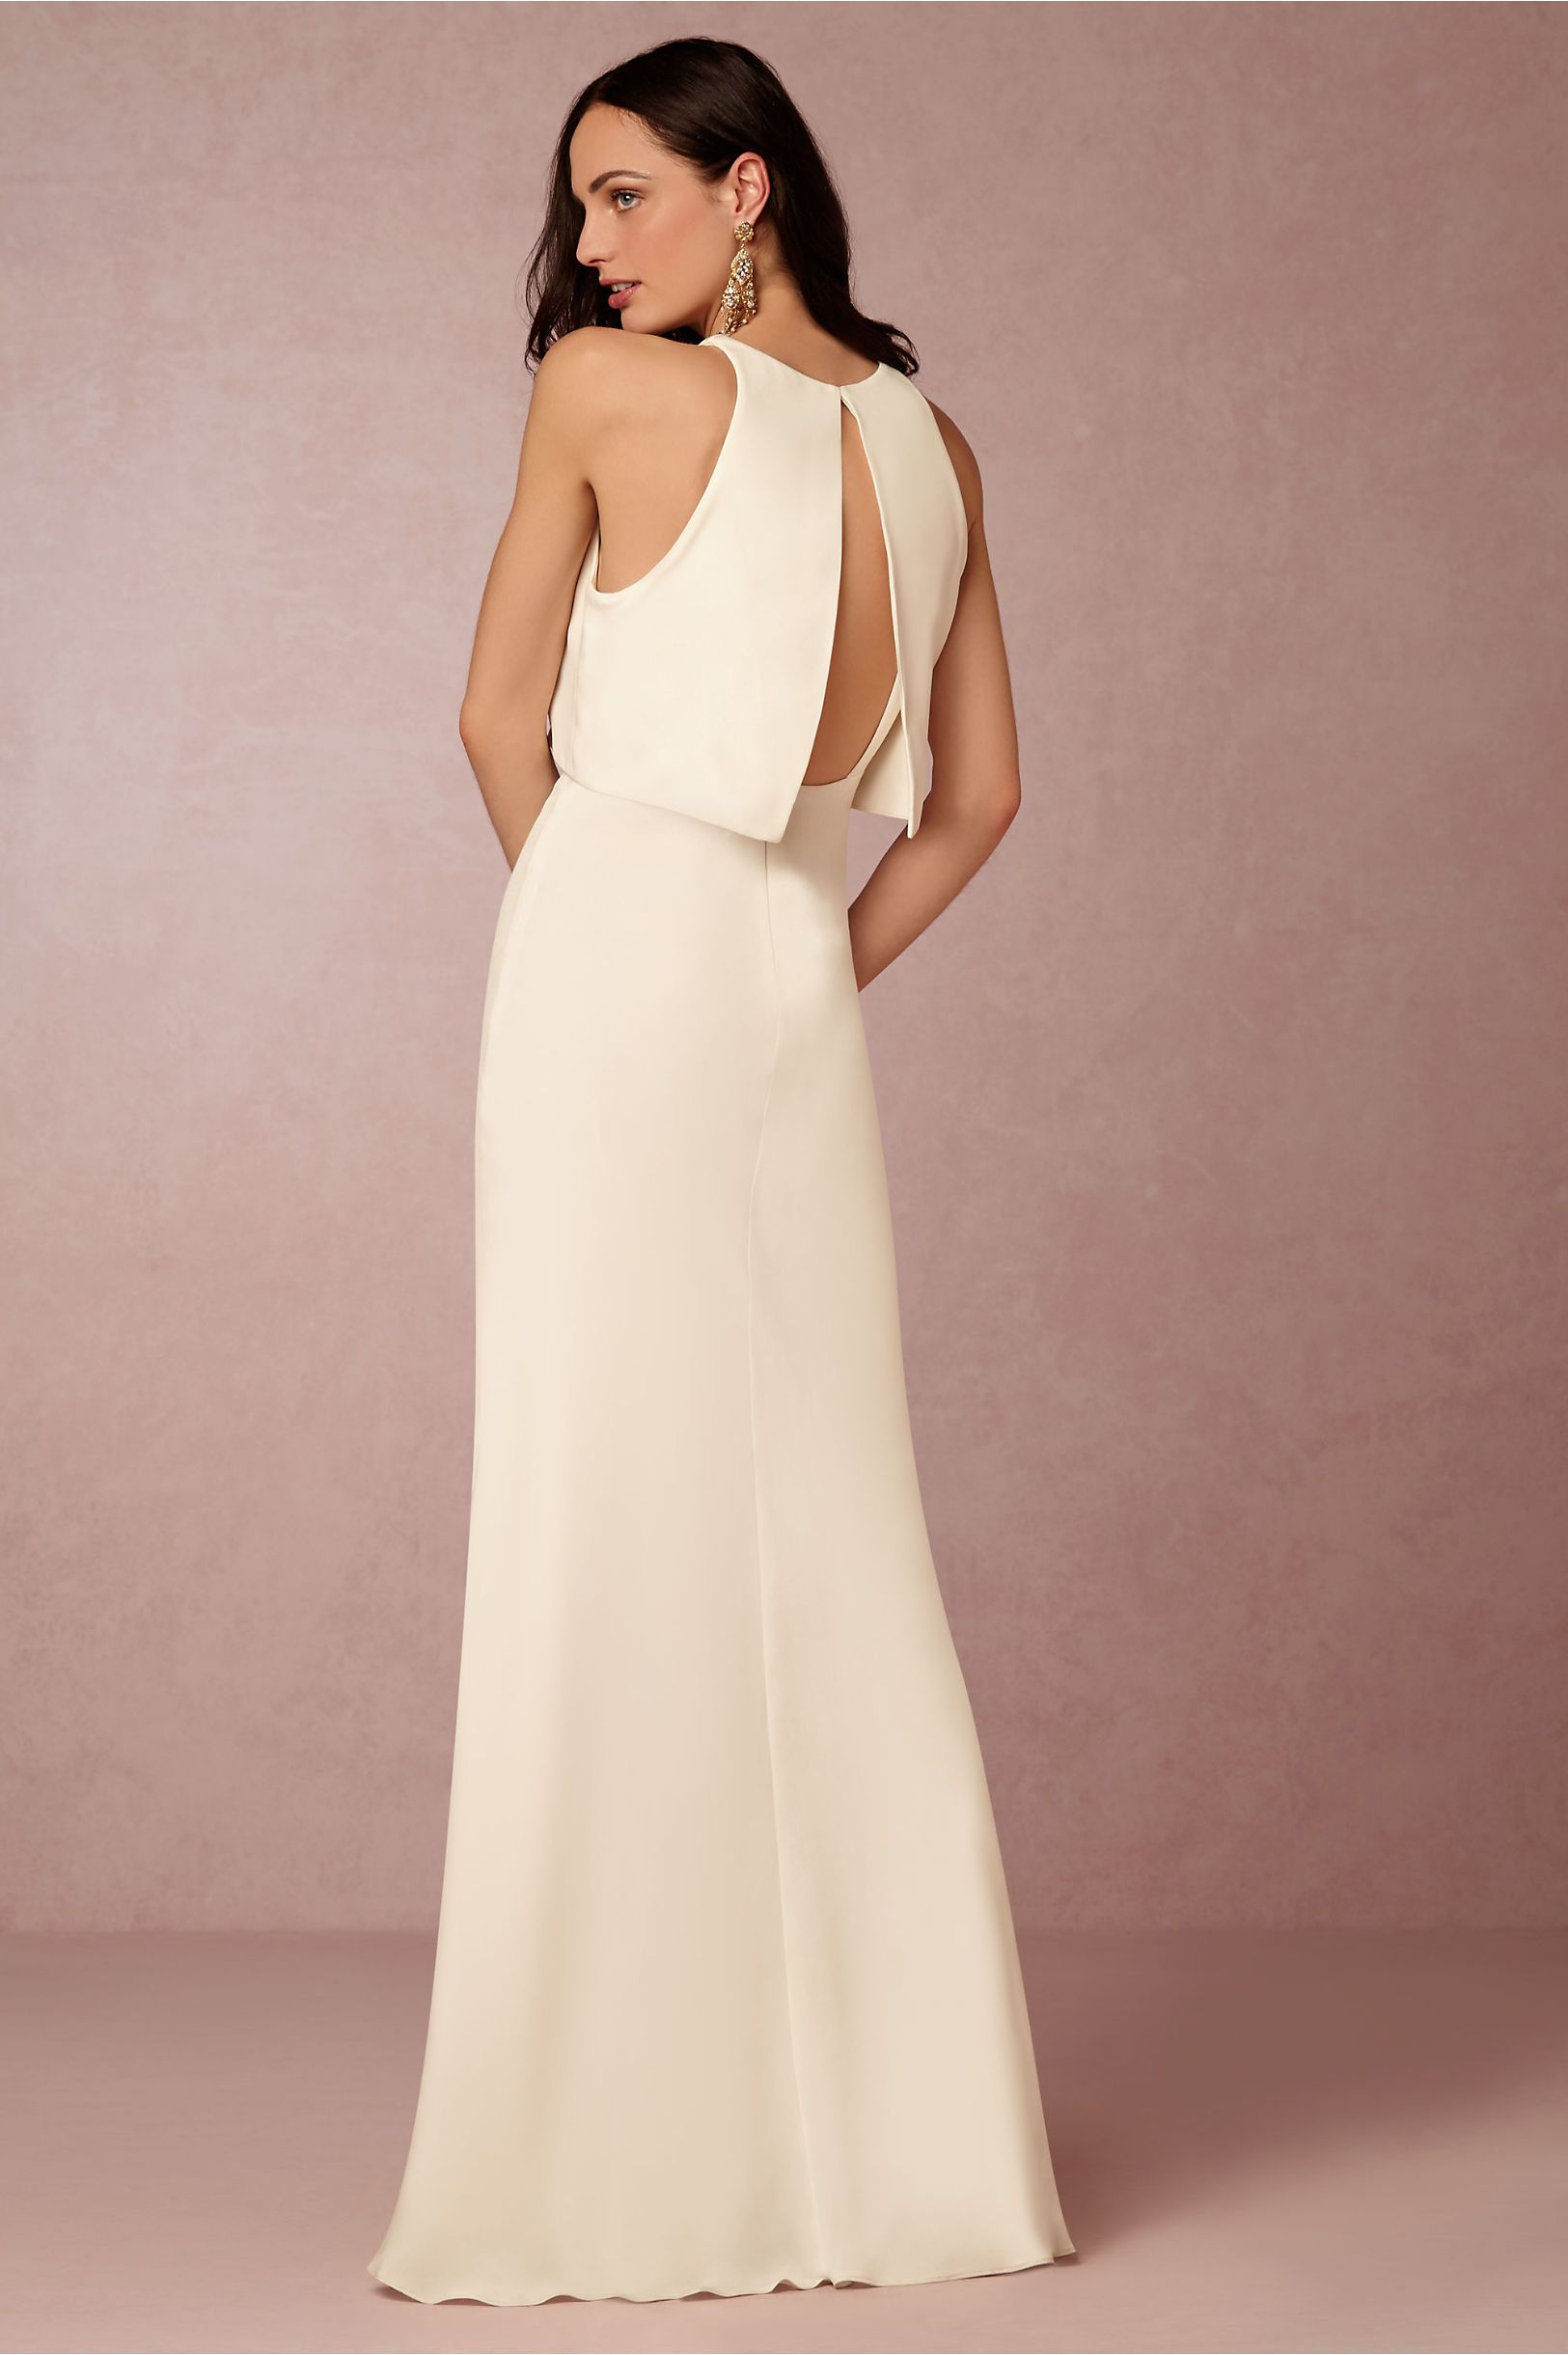 Long wedding reception dresses for the bride  BHLDN Iva Crepe Maxi in Bridesmaids View All Dresses at BHLDN